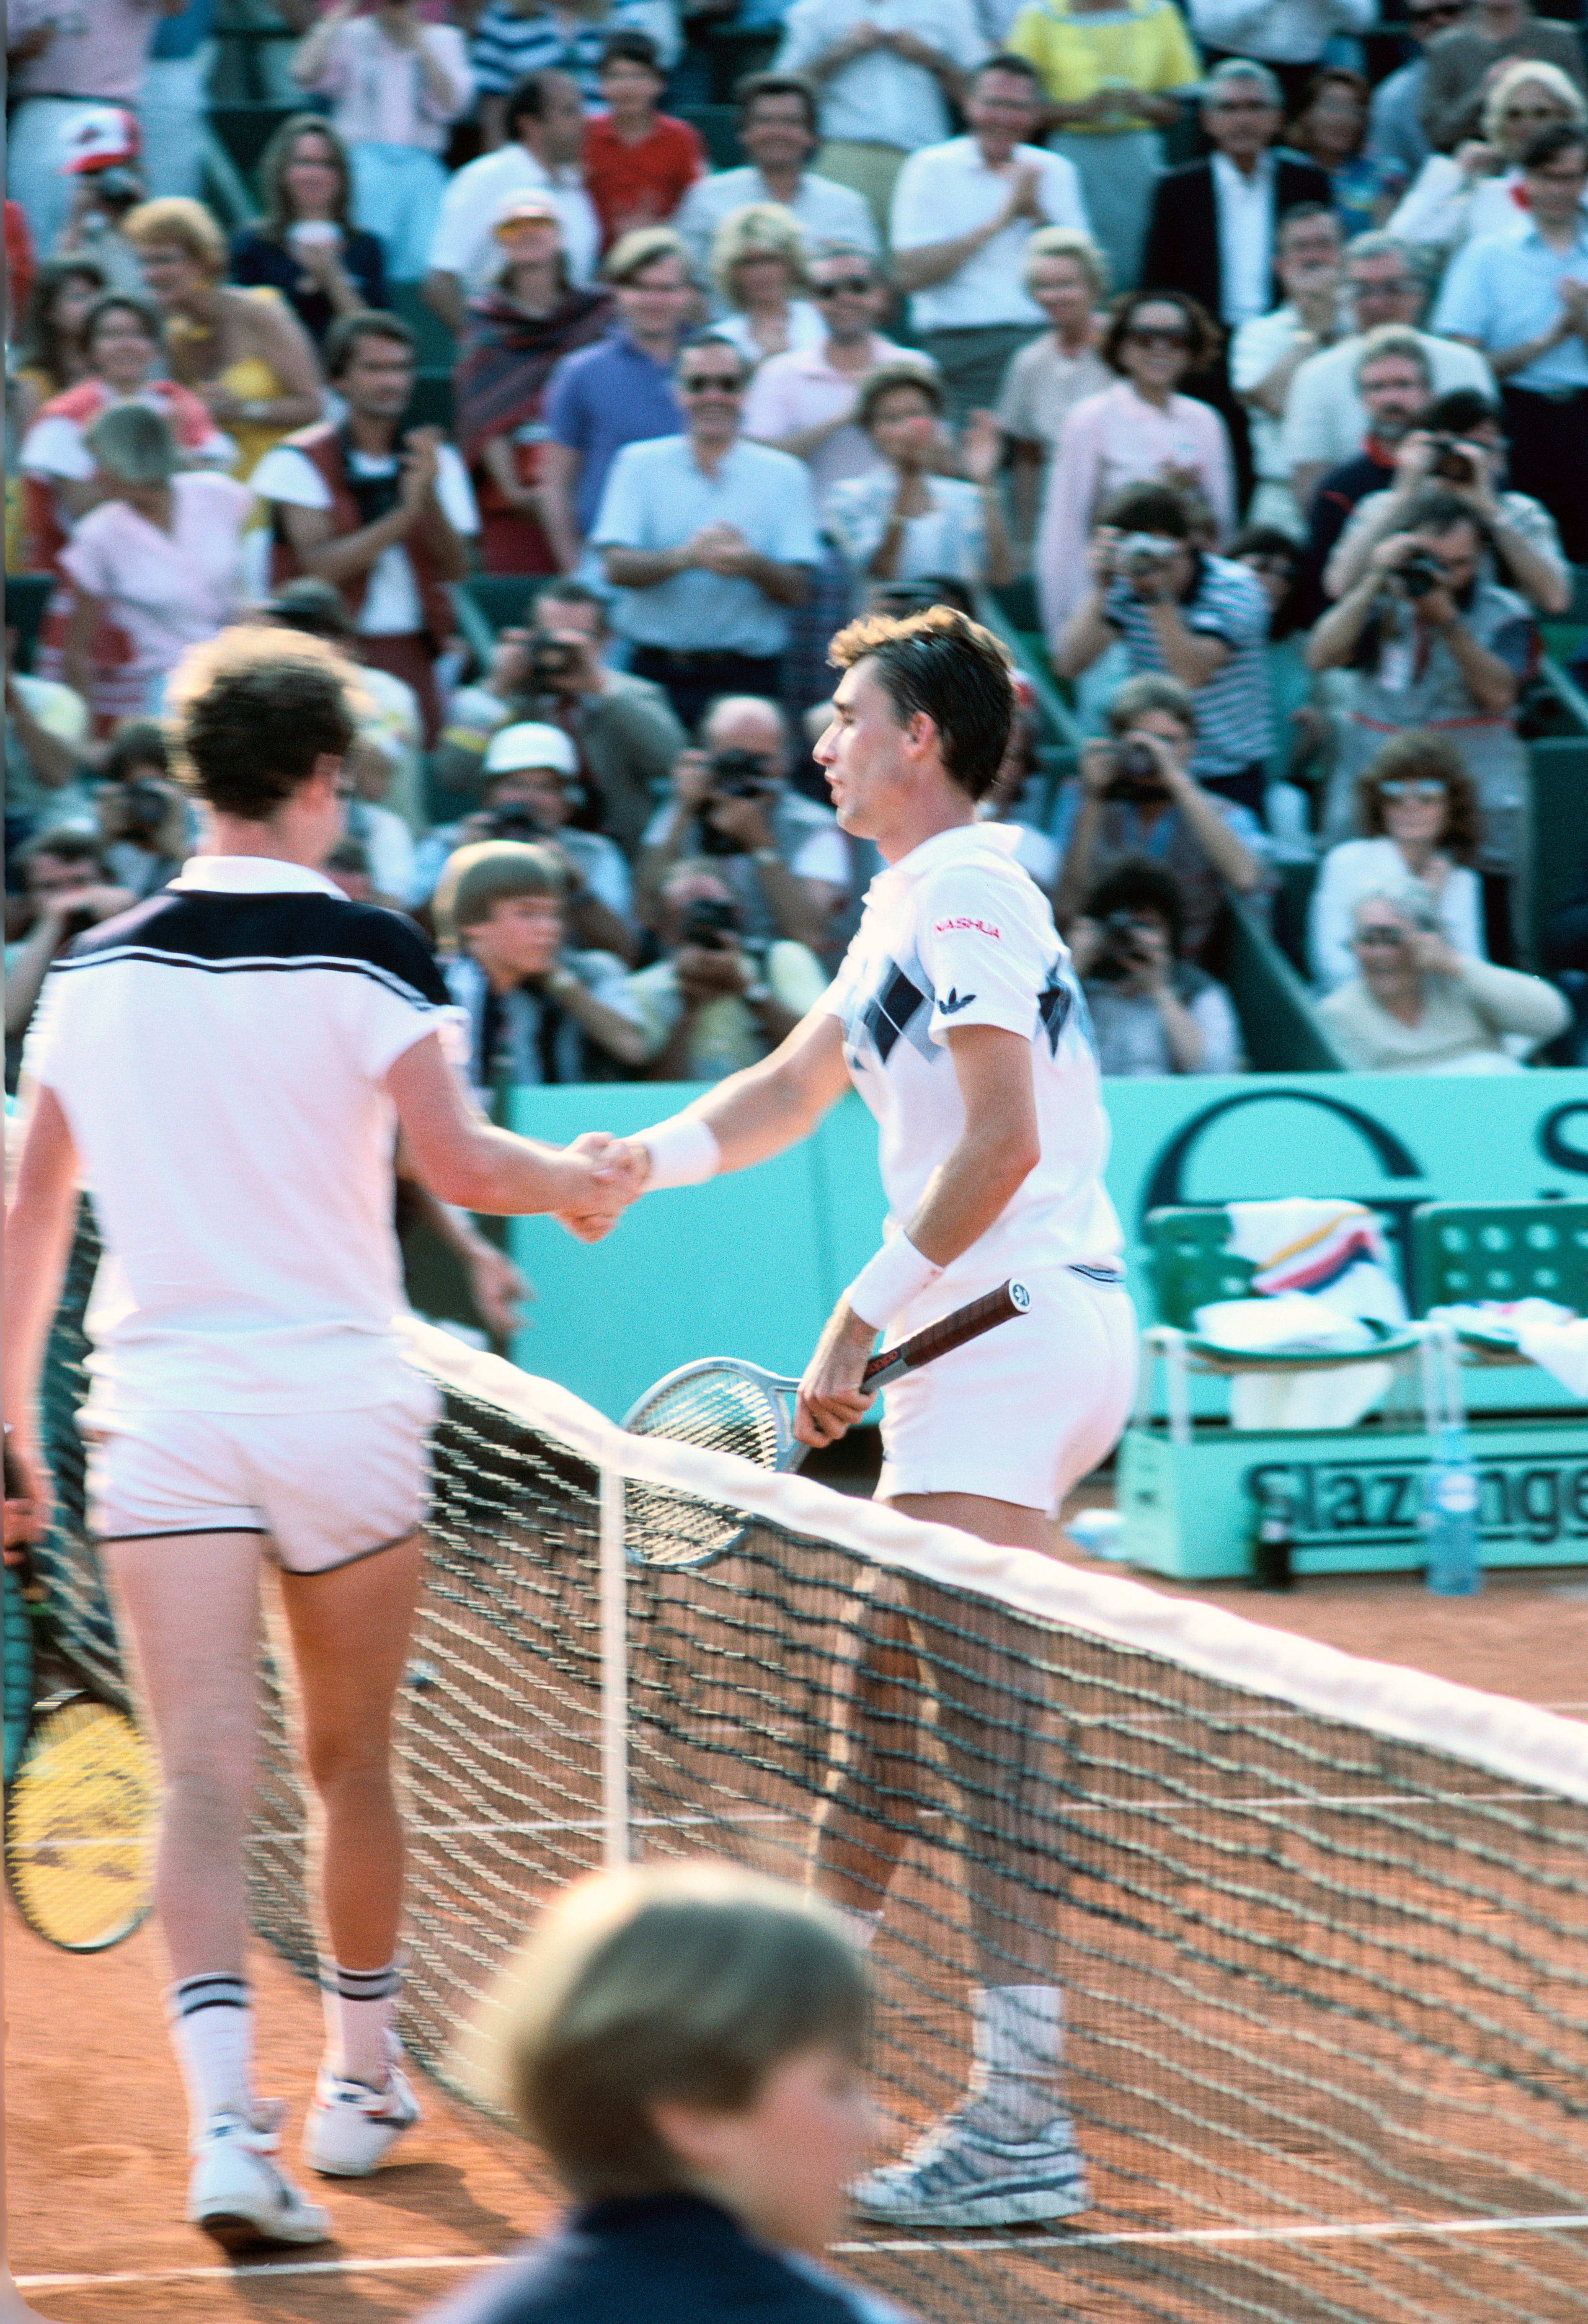 Lendl and McEnroe at the end of their legendary final at Roland-Garros 1984